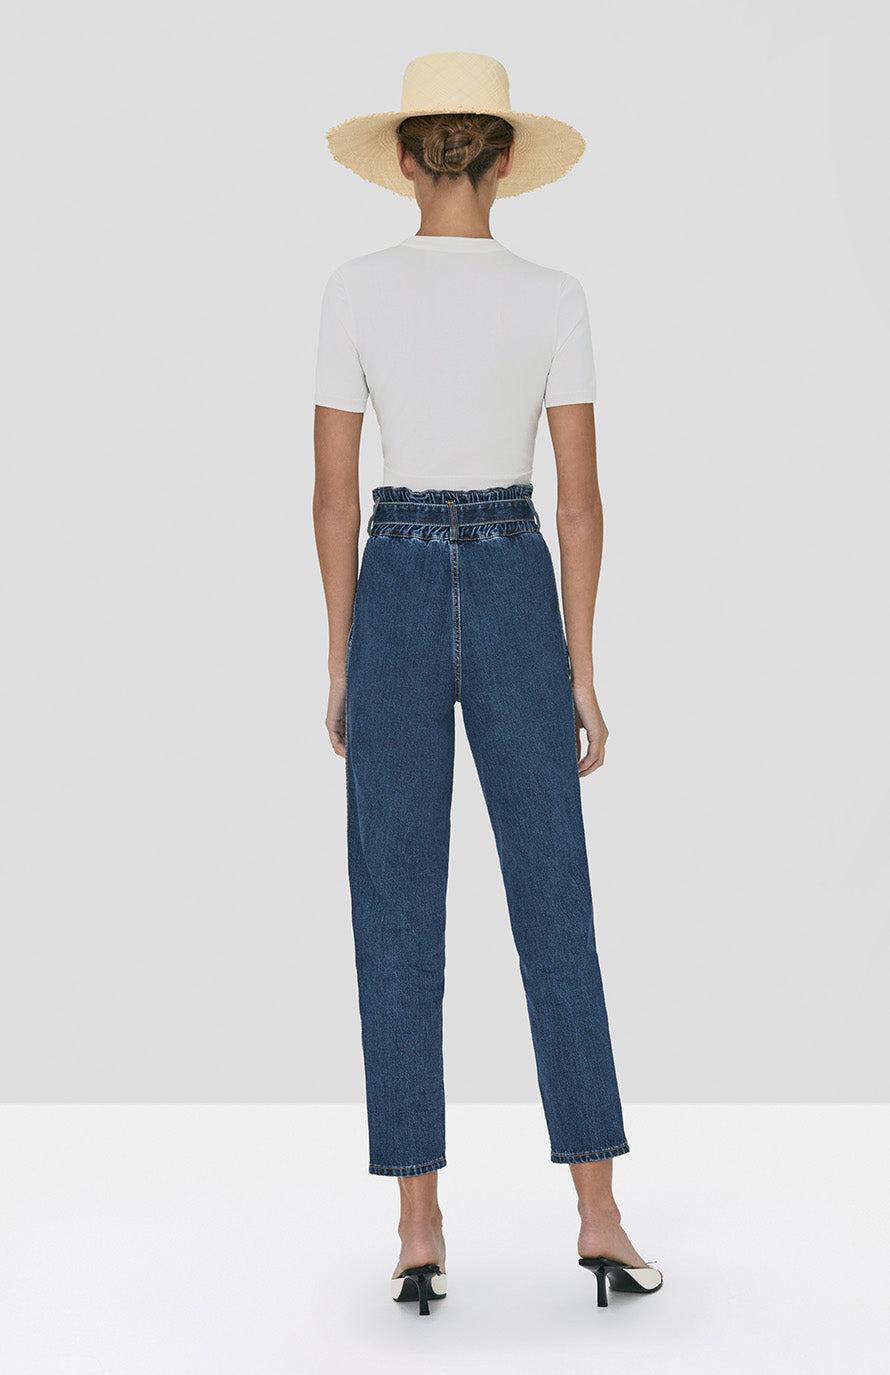 Alexis Finzi Crop Top in White and Stannis Denim Pant in Washed Denim from Spring Summer 2020 - Rear View